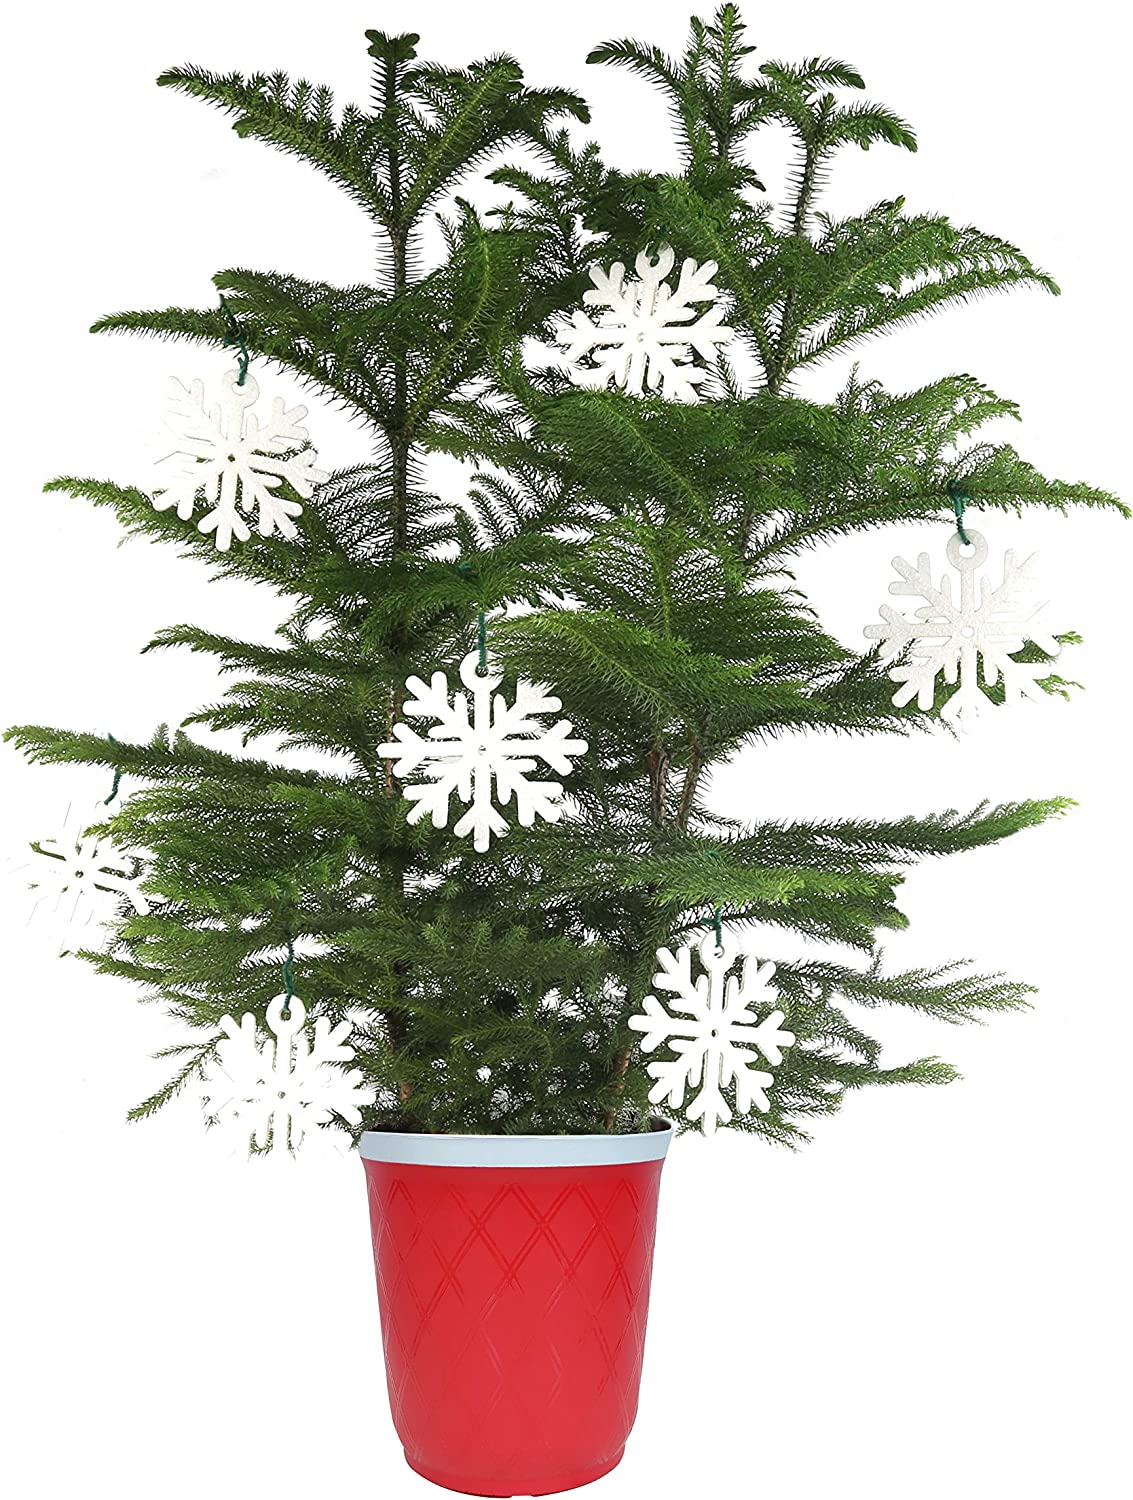 Costa Farms Live Indoor Christmas Tree, 4-Feet Tall, Ships with Red Planter and White Snowflakes, Fresh From Our Farm, Great as Gift or Christmas Decoration